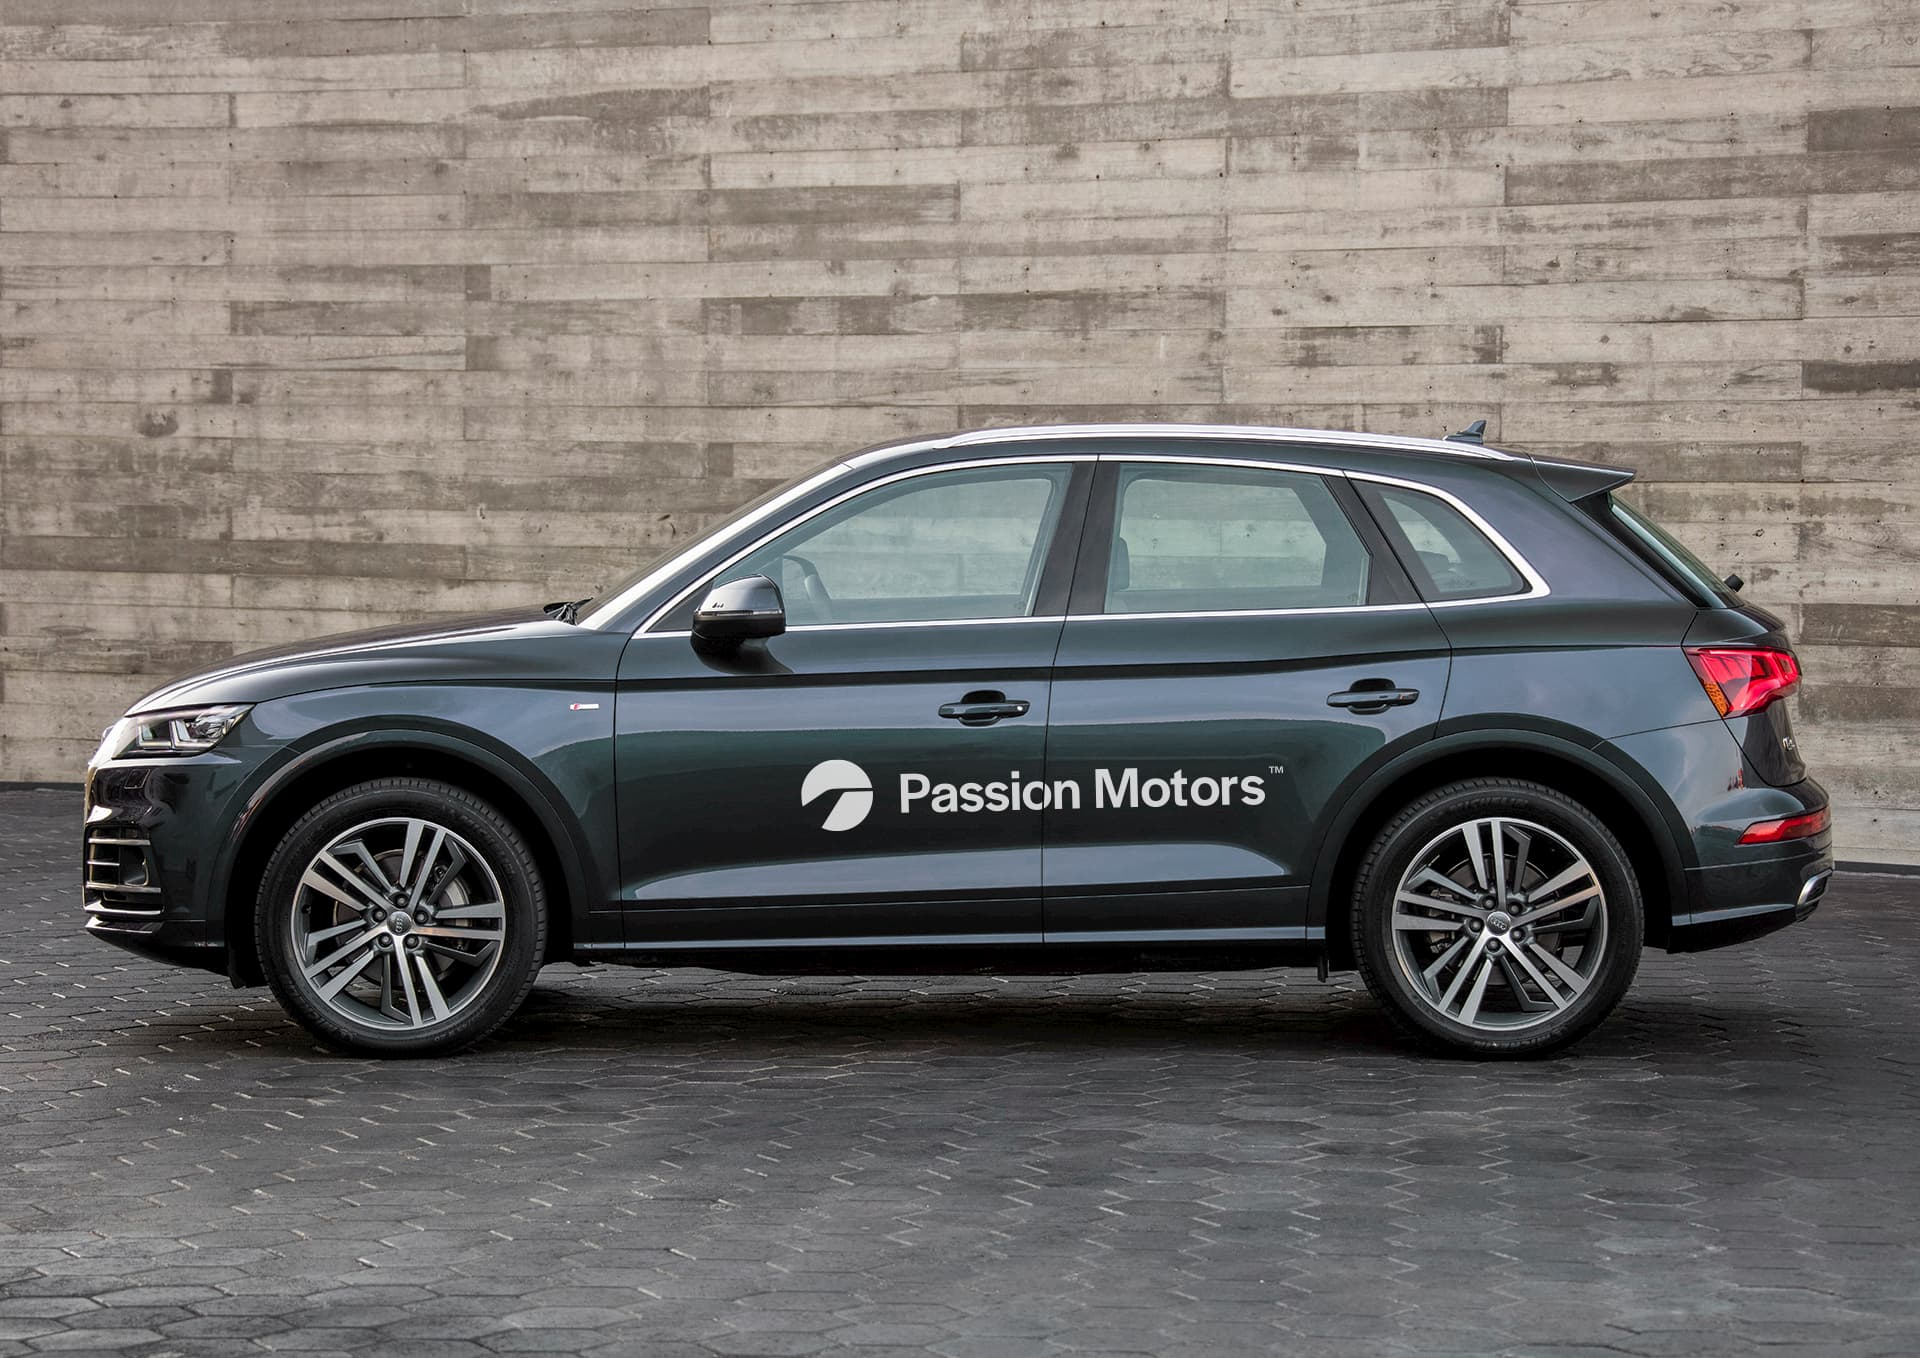 Passion Motors livery